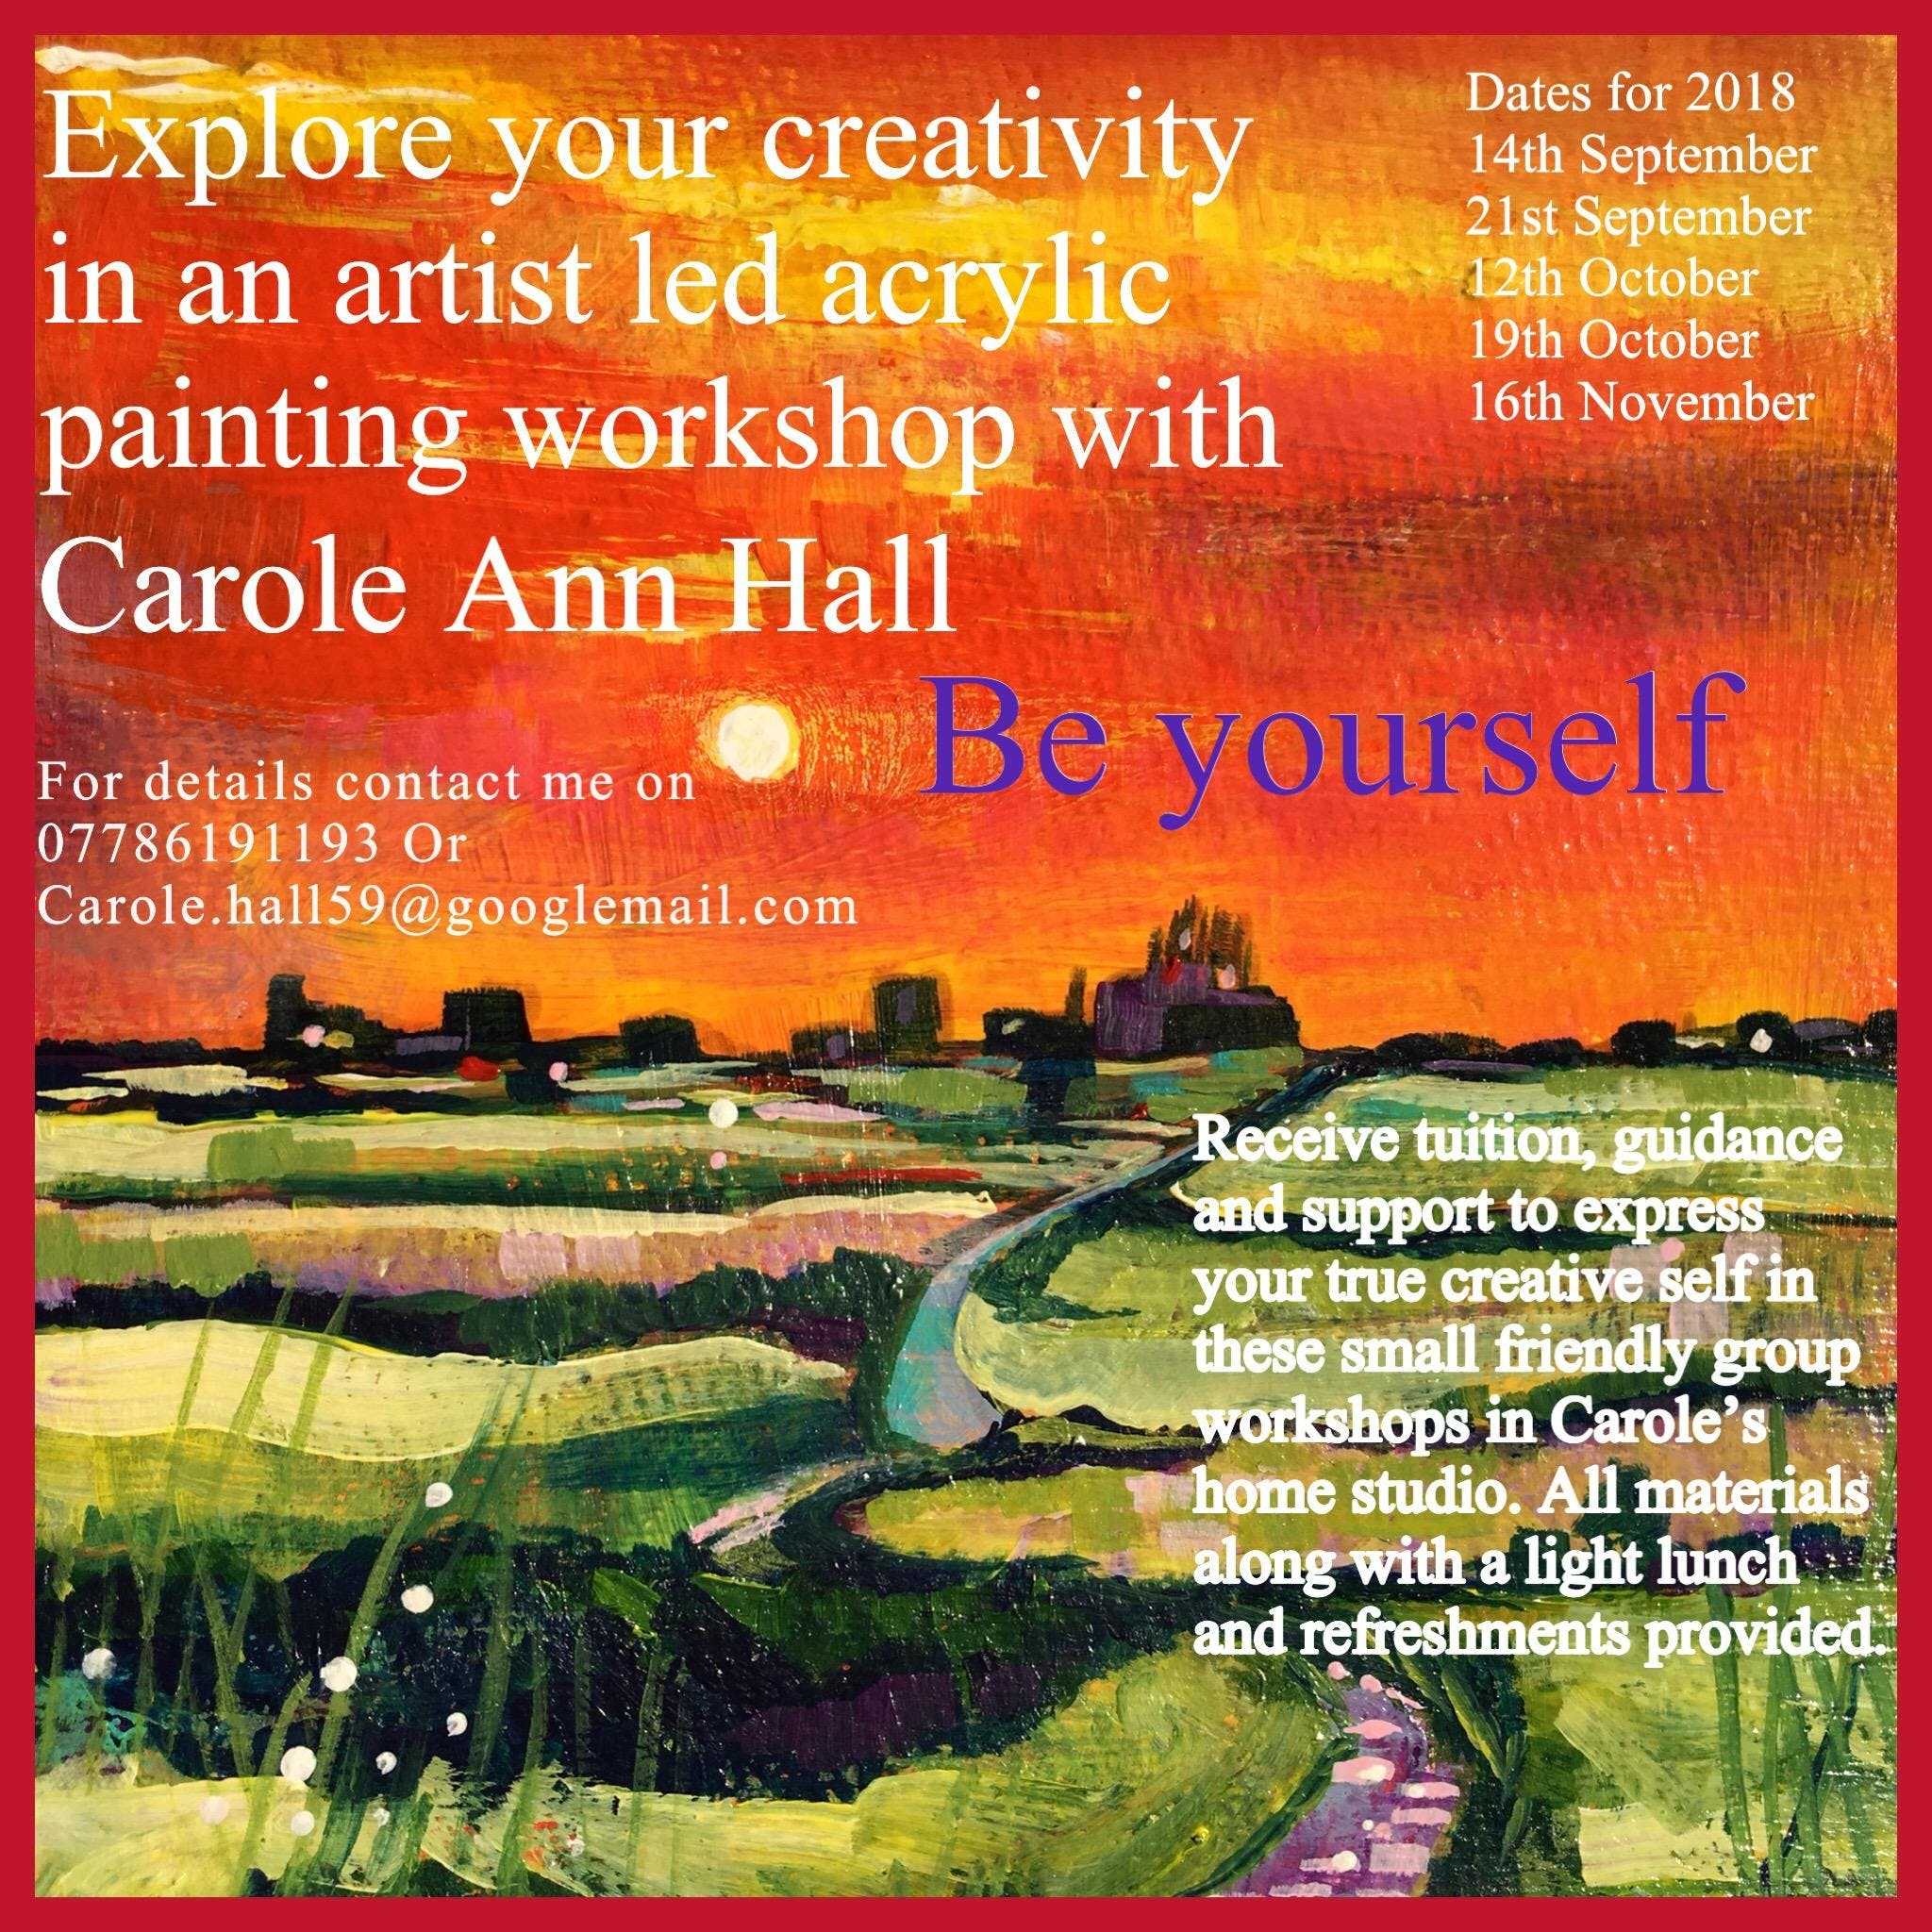 16th November Acrylic painting workshop - las